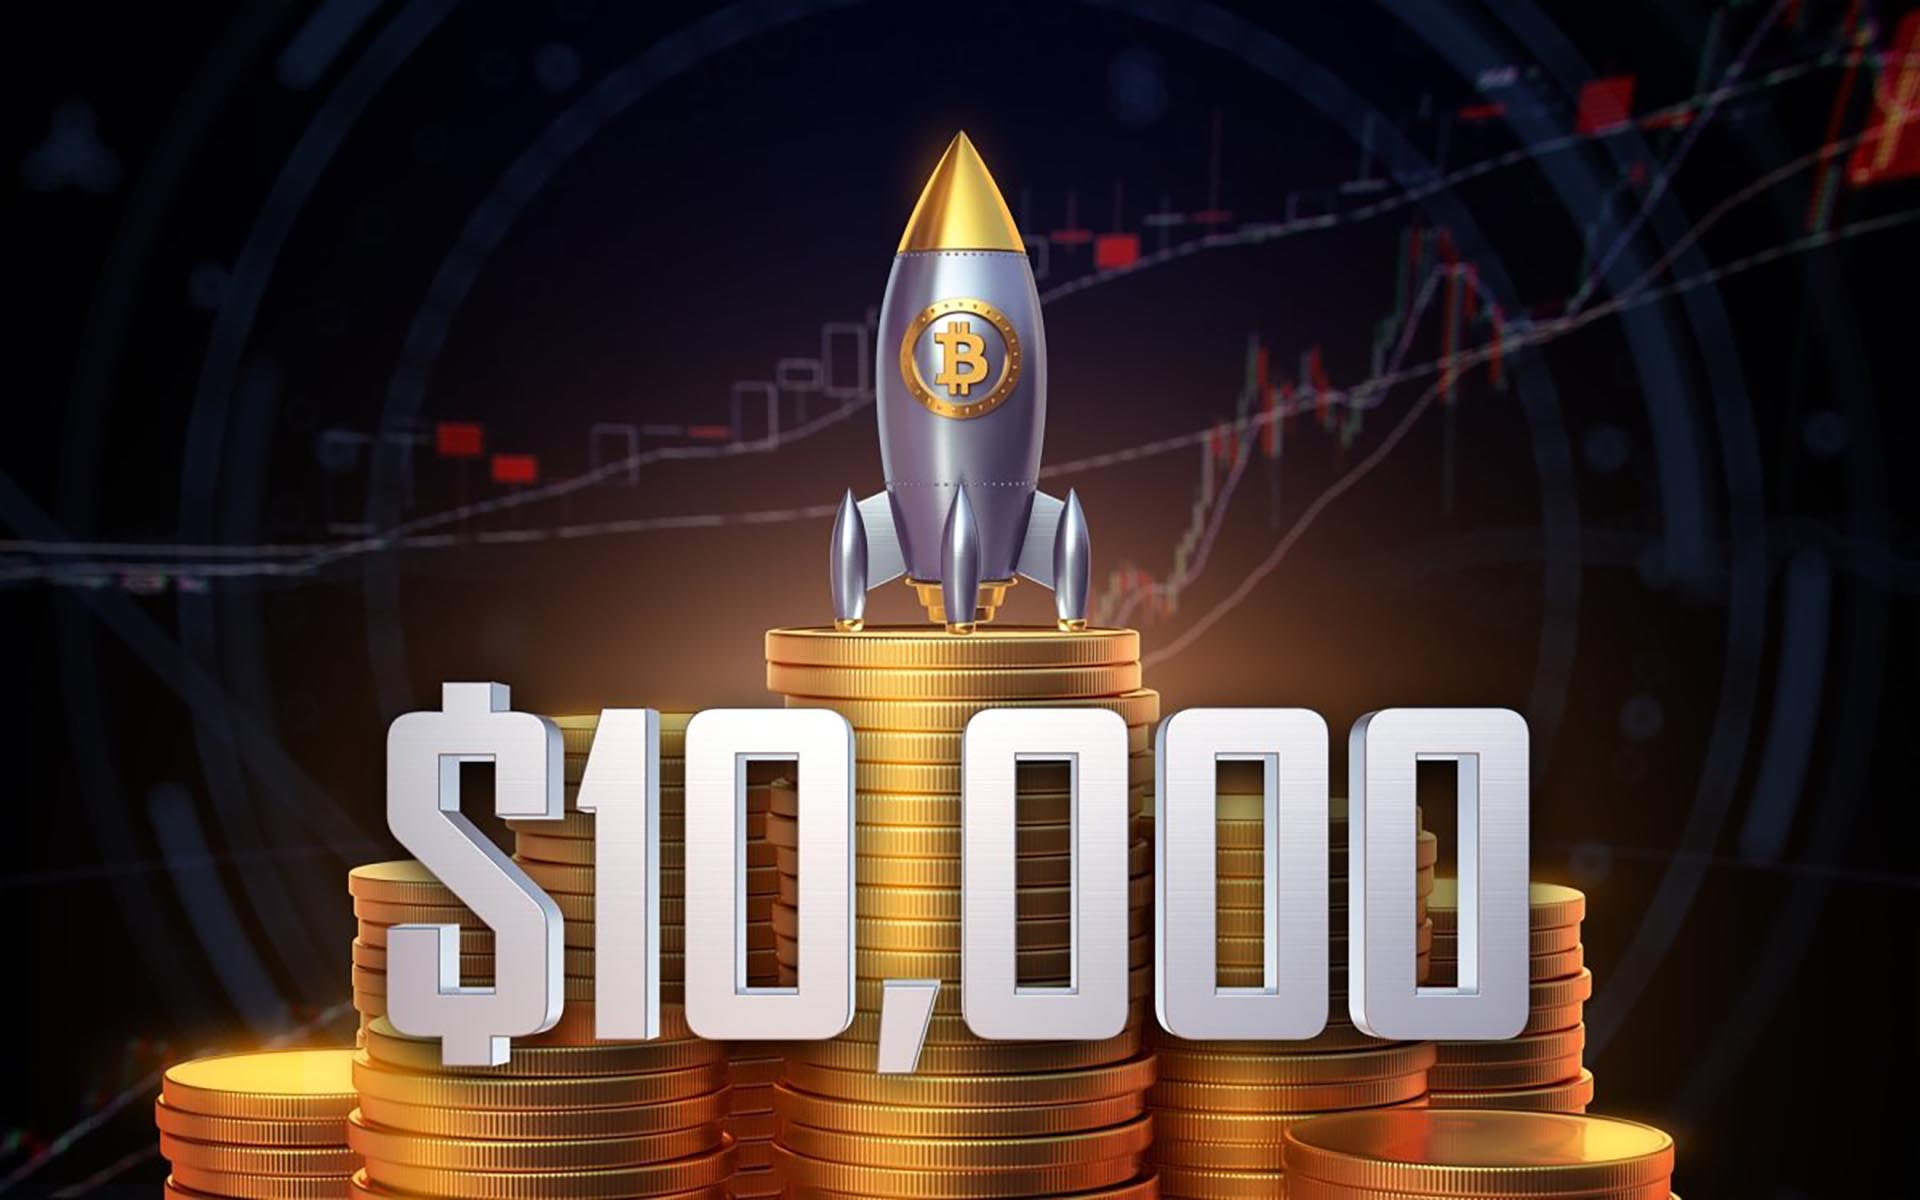 bitcoin - Bitcoin Finally Breaks $10,000! BTC Would Be Worth Much More If The Masses Understood Crypto's Power, Kraken Says